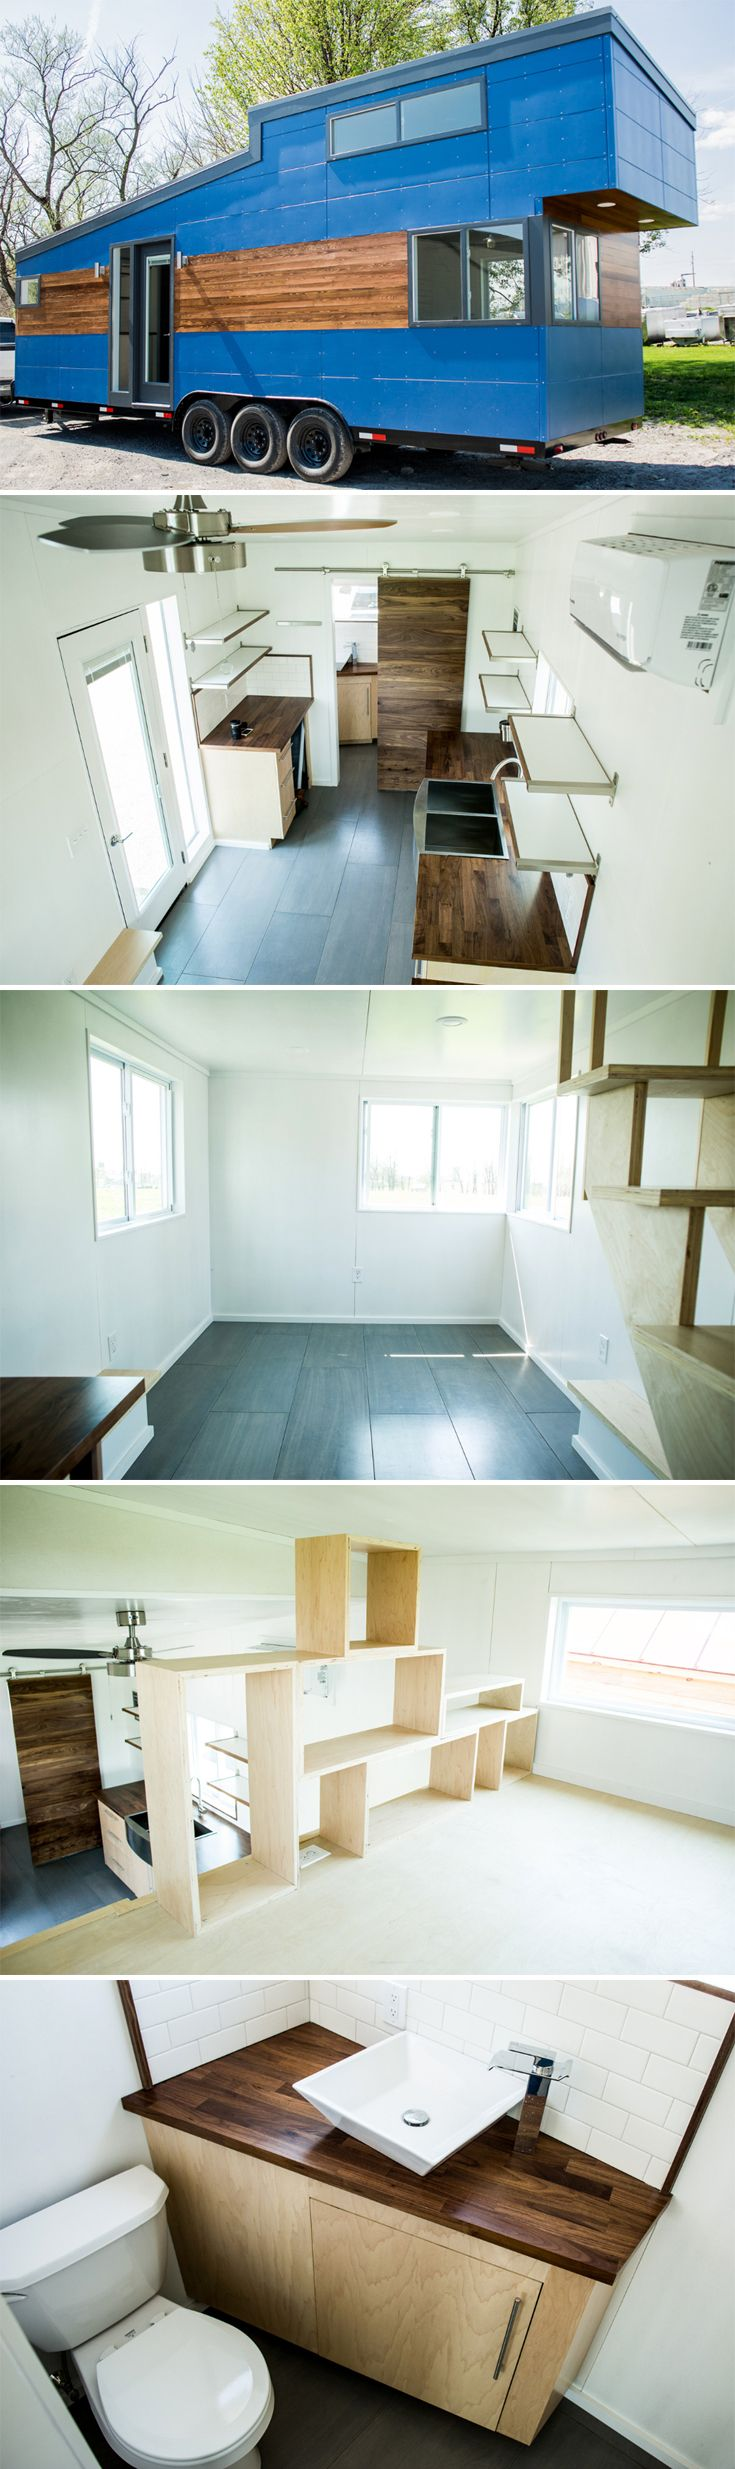 1439 best Tinyhouse images on Pinterest   Tiny house, Small houses ...